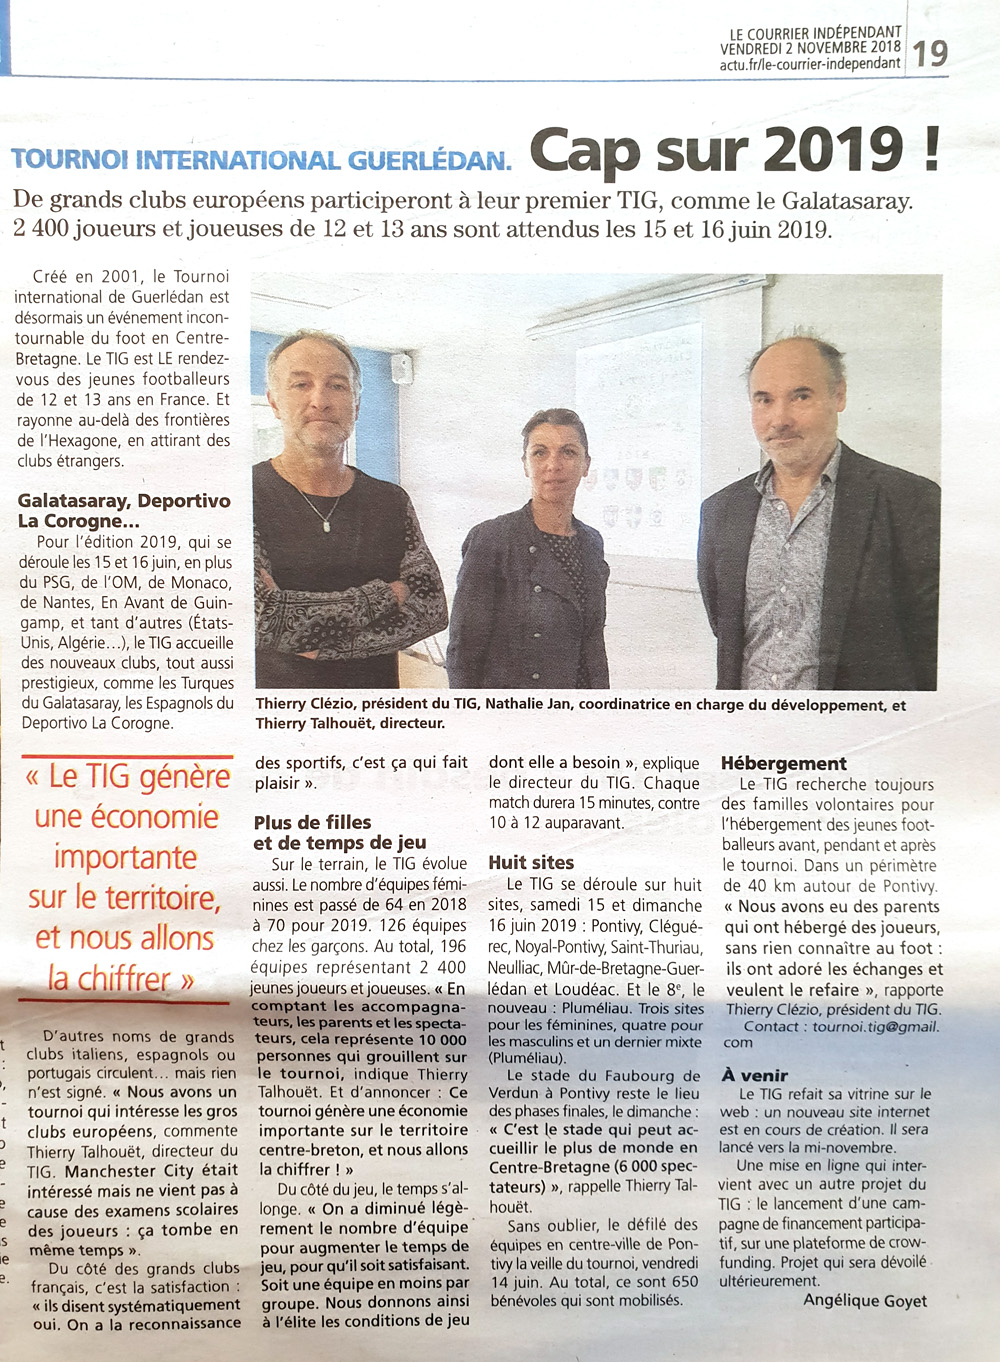 2019-courier_independant-2_novembre2018